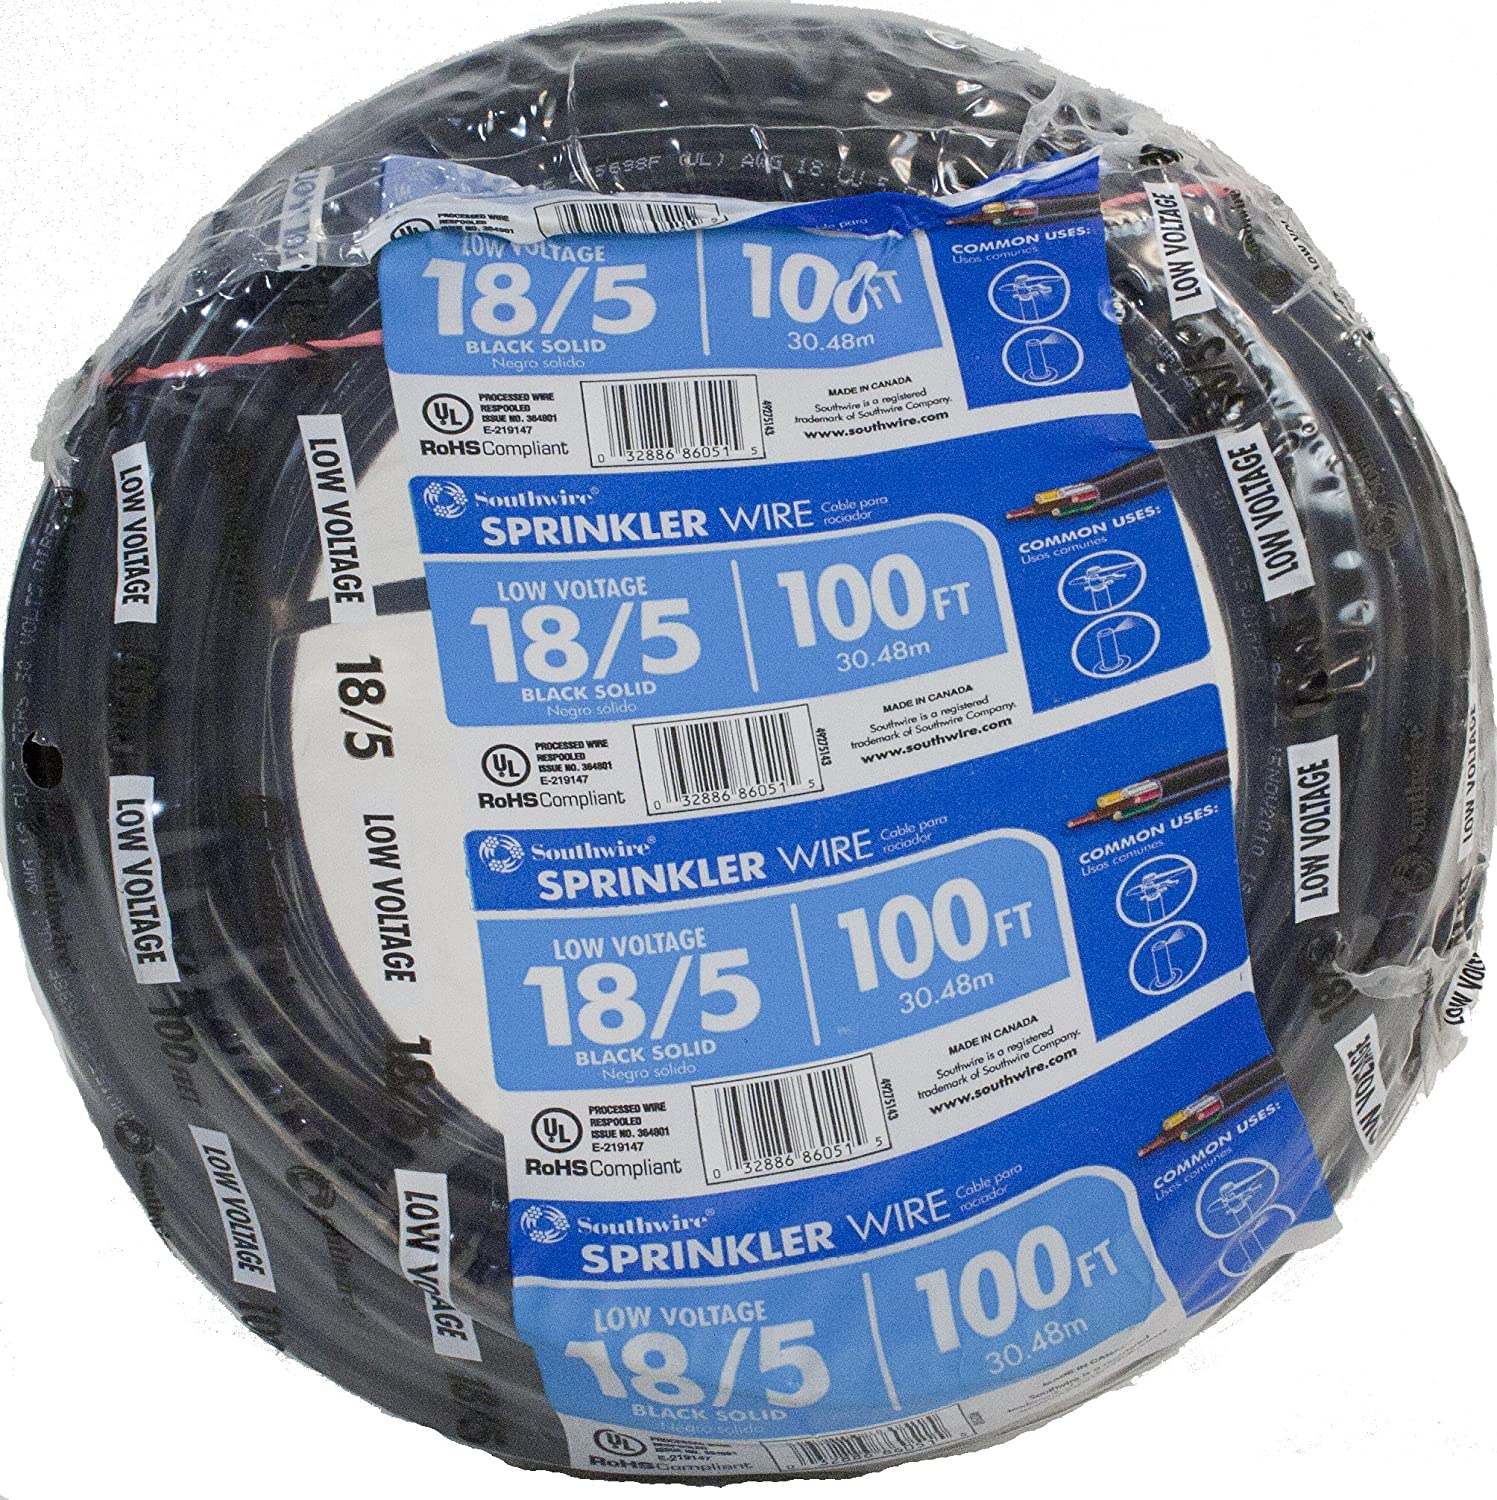 Southwire 49275143 100' 18/5 Multi-Conductor Sprinkler Wire for outdoor use, Black, 100 foot